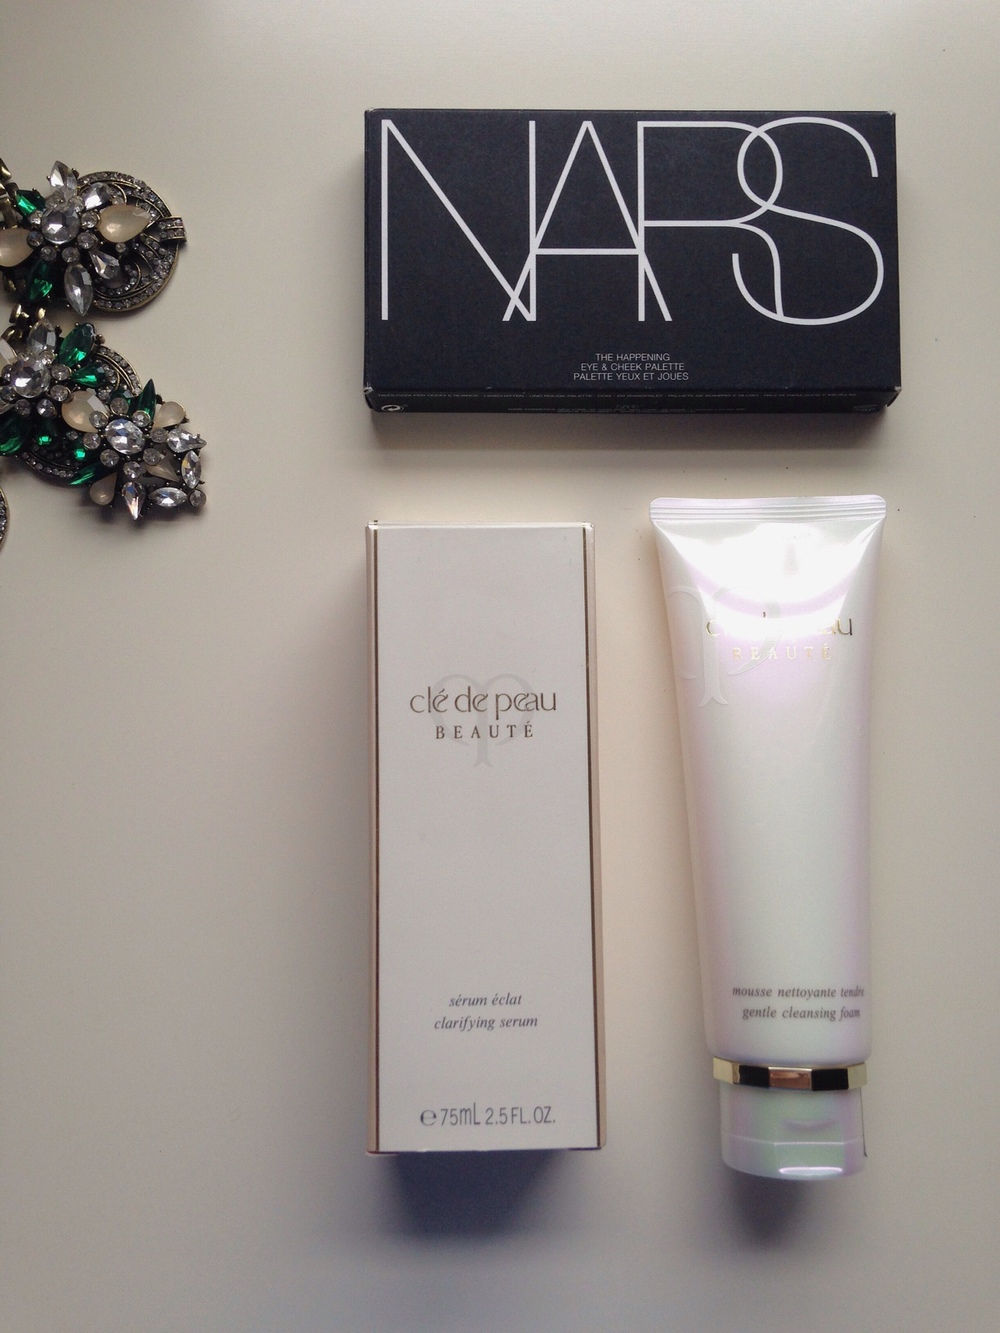 NARS The Happening Palette; Cle de Peau Clarifying Serum; Cle de Peau Gentle Cleansing Foam